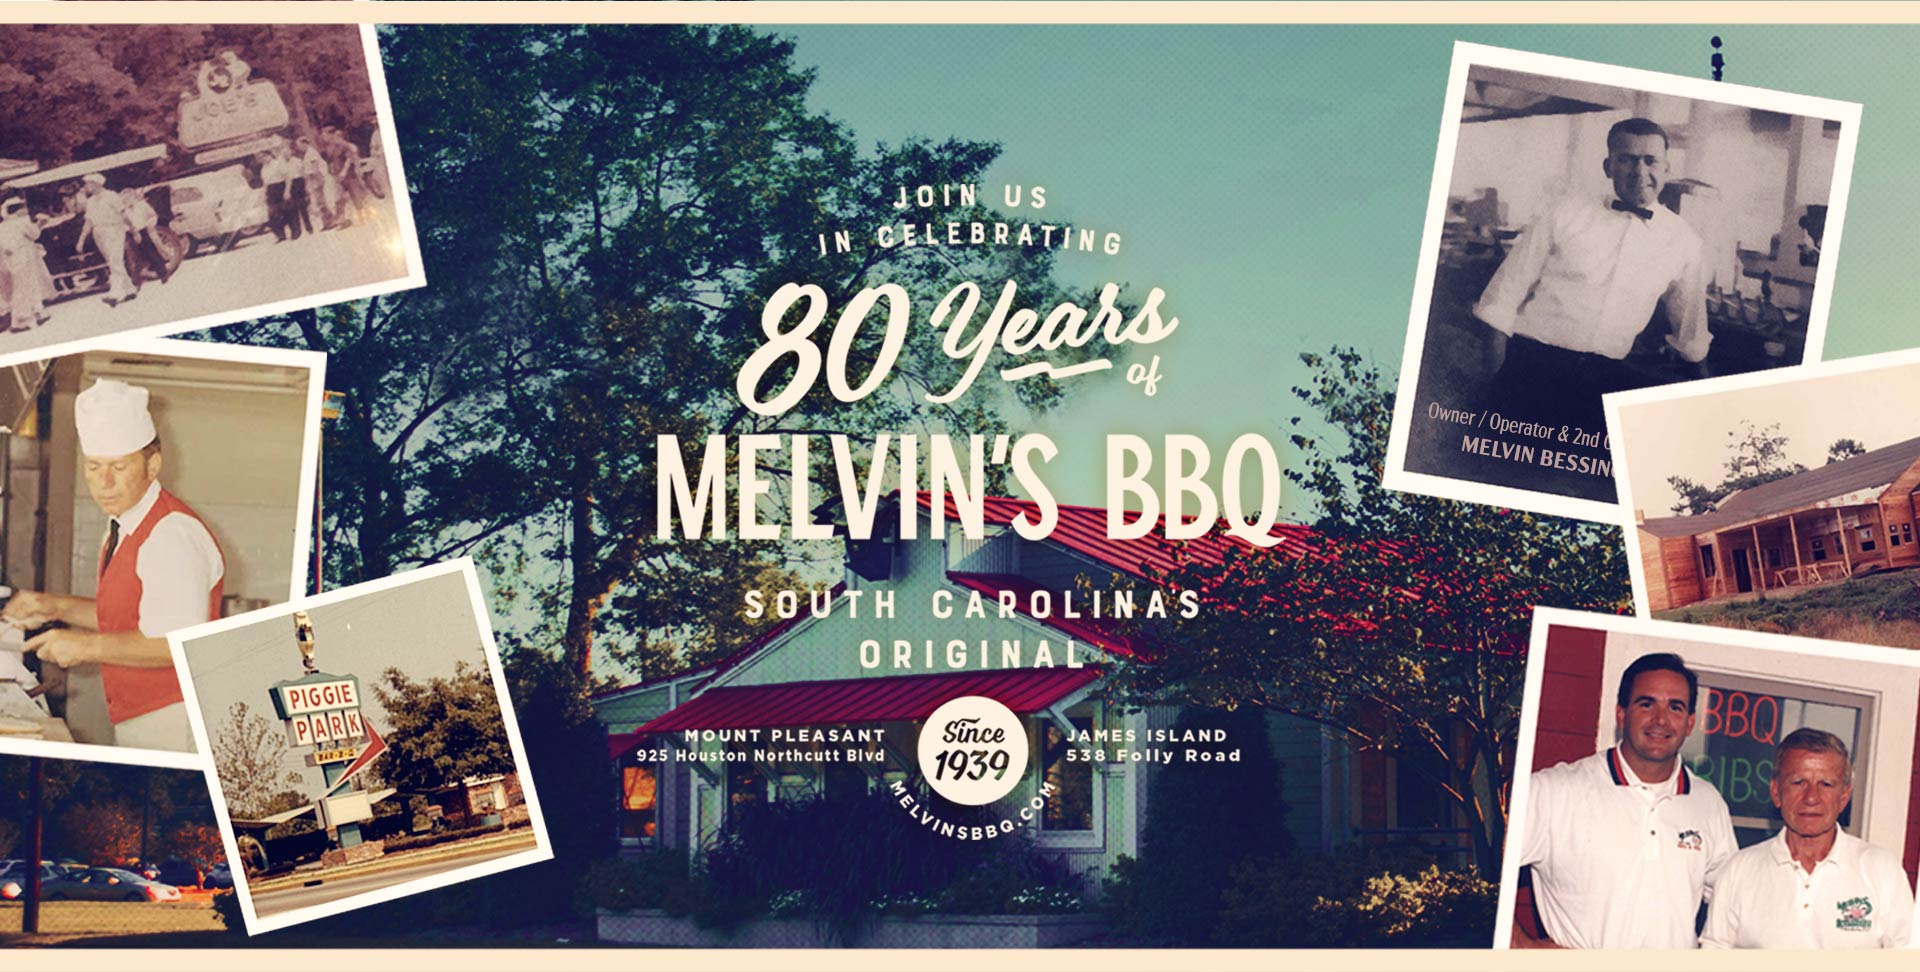 Melvin's BBQ